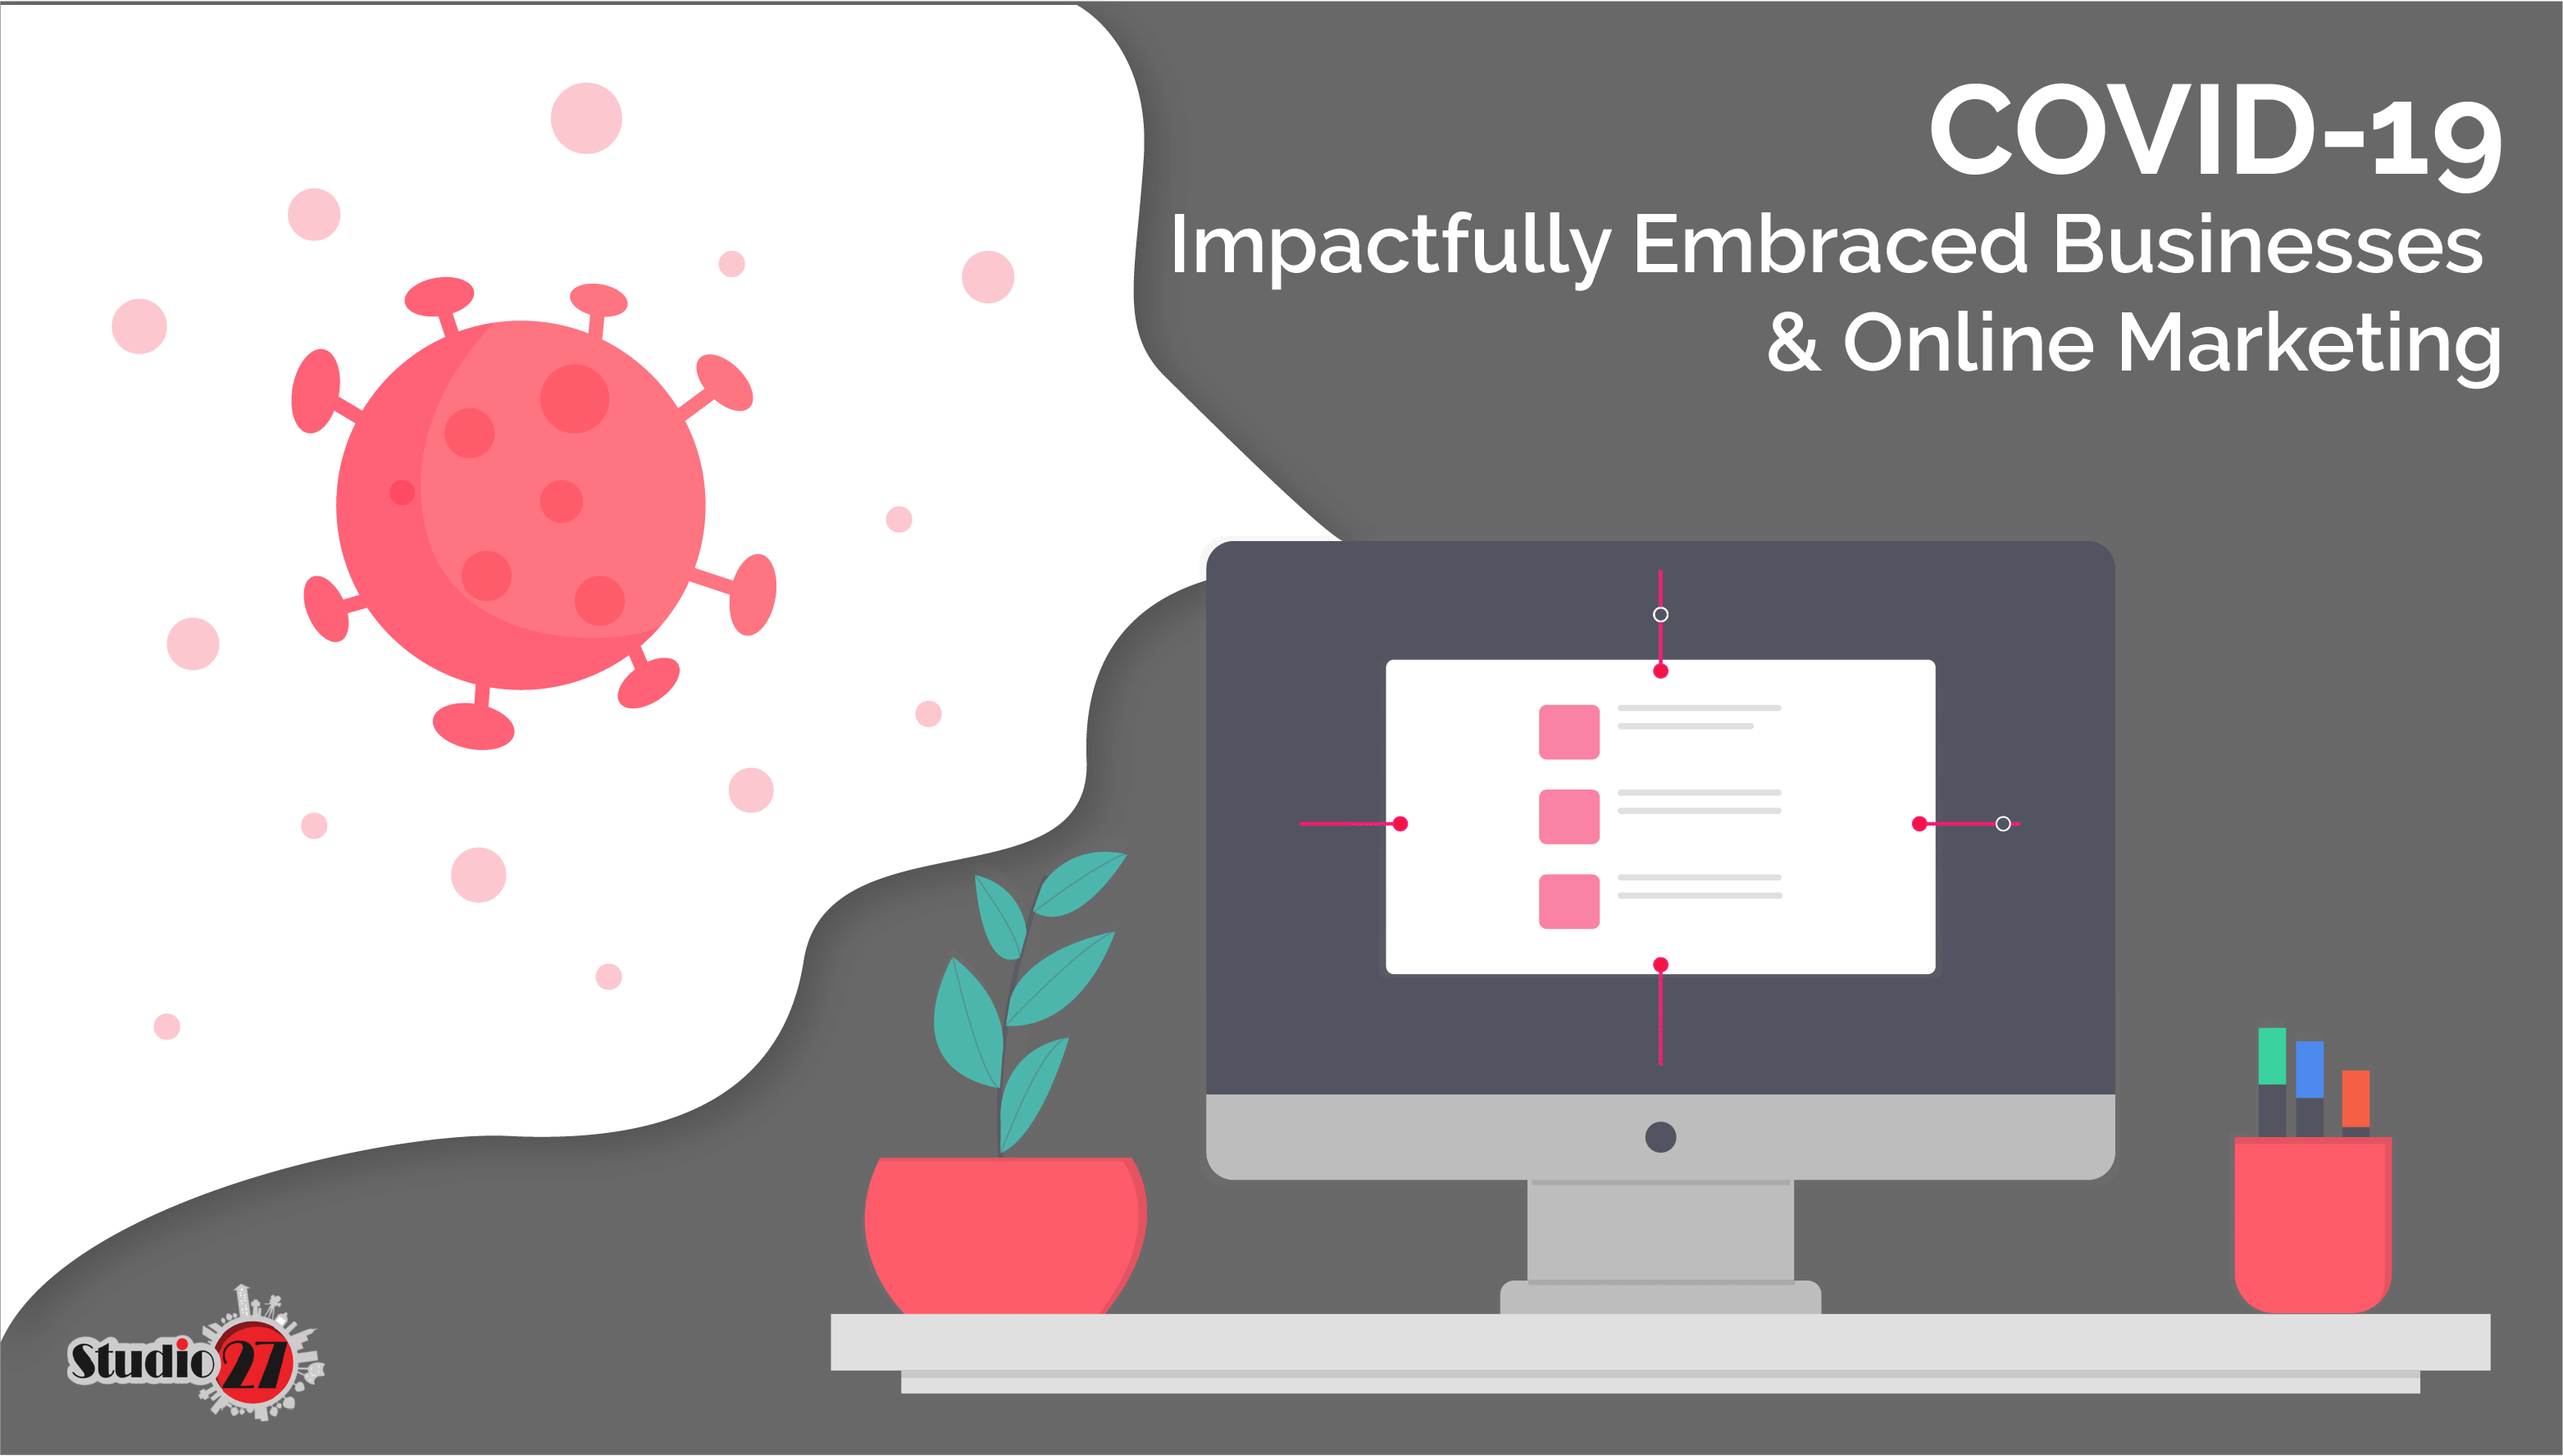 COVID-19 : Impactfully Embraced Businesses & Online Marketing